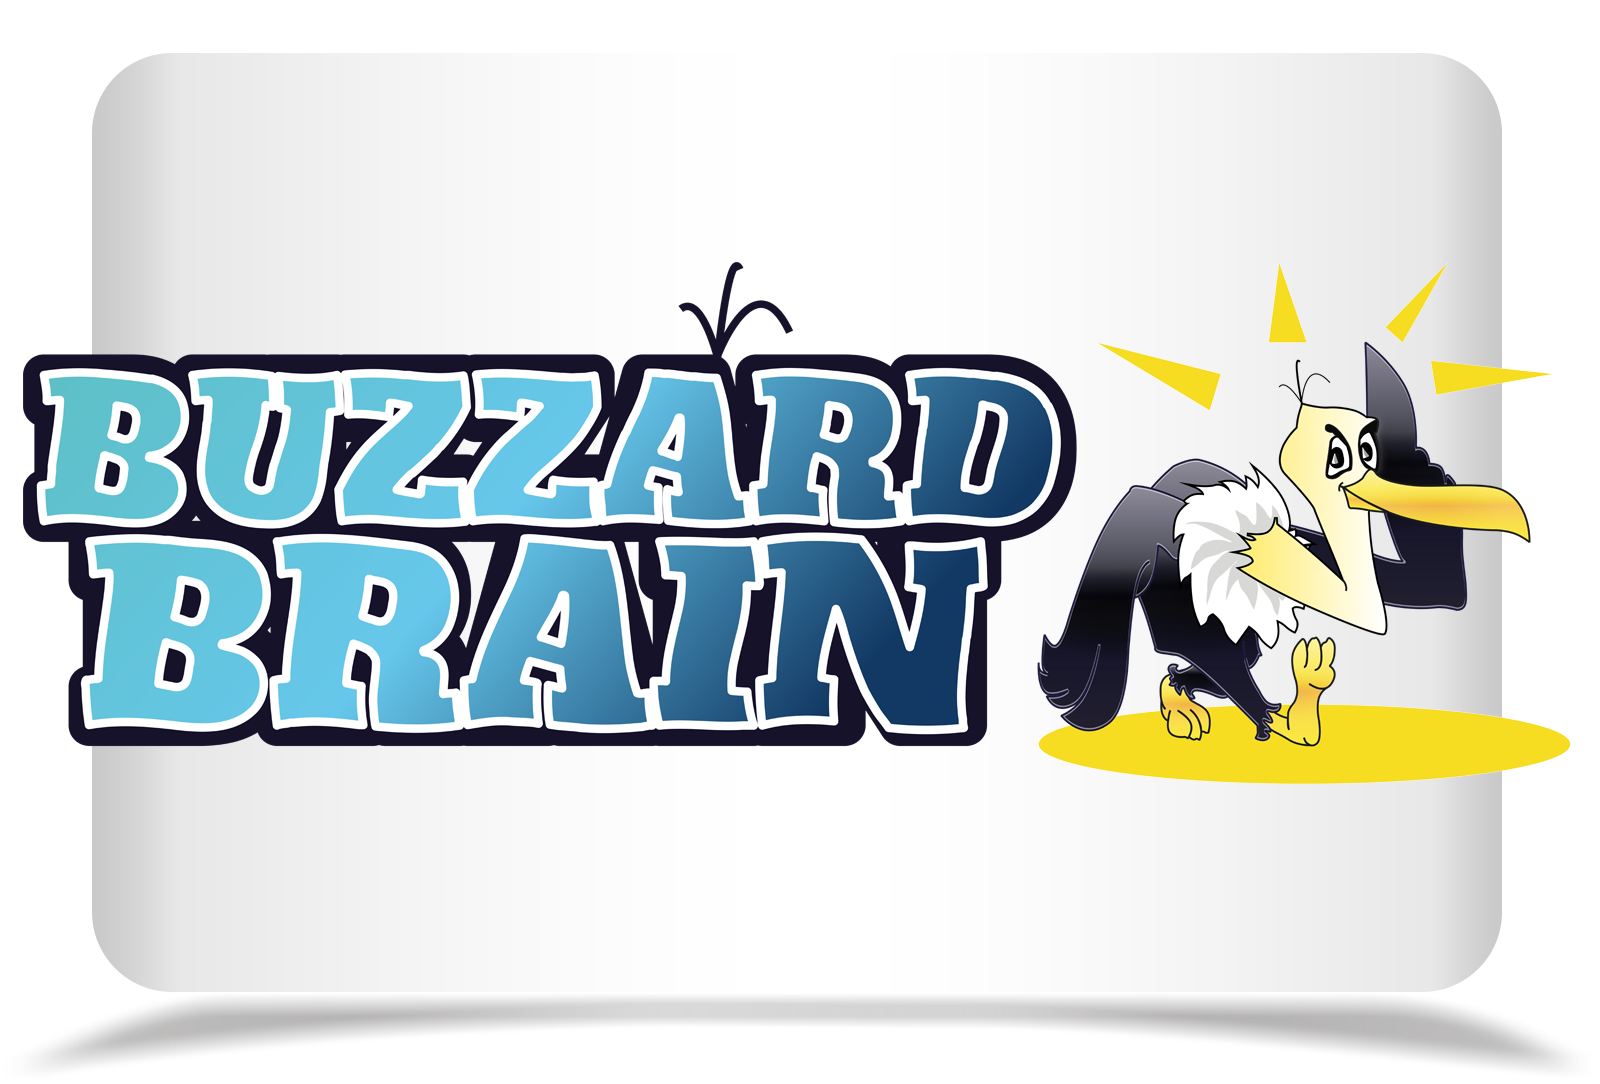 Logo Design by Rozsa Matyas - Entry No. 63 in the Logo Design Contest Buzzard Brain Logo Design.